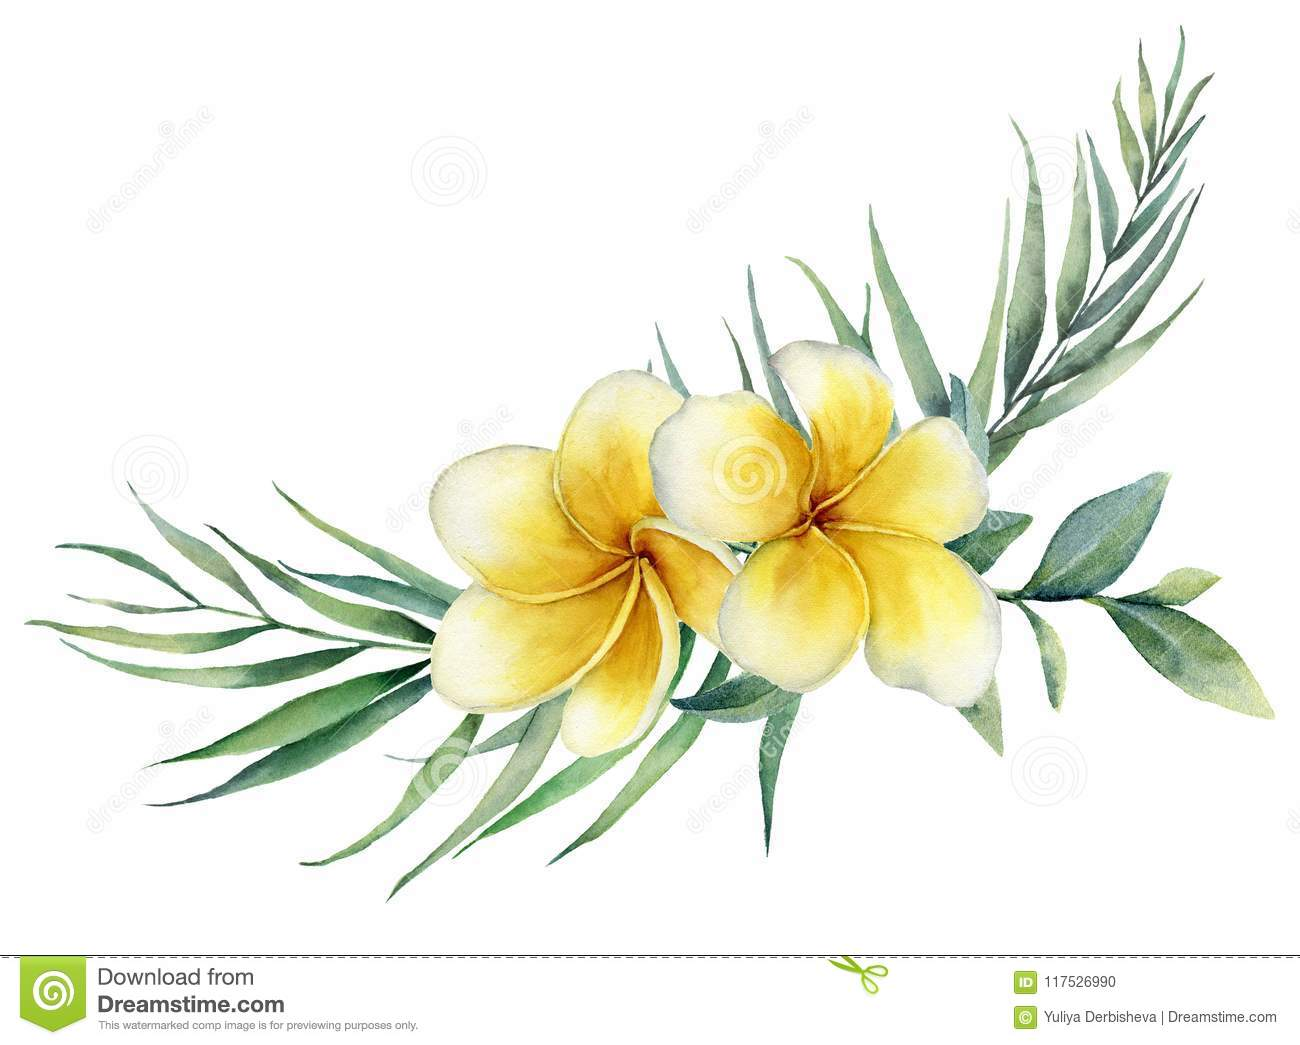 Watercolor floral tropical bouquet with plumeria and palm branch. Hand painted frangipani, eucalyptus isolated on white